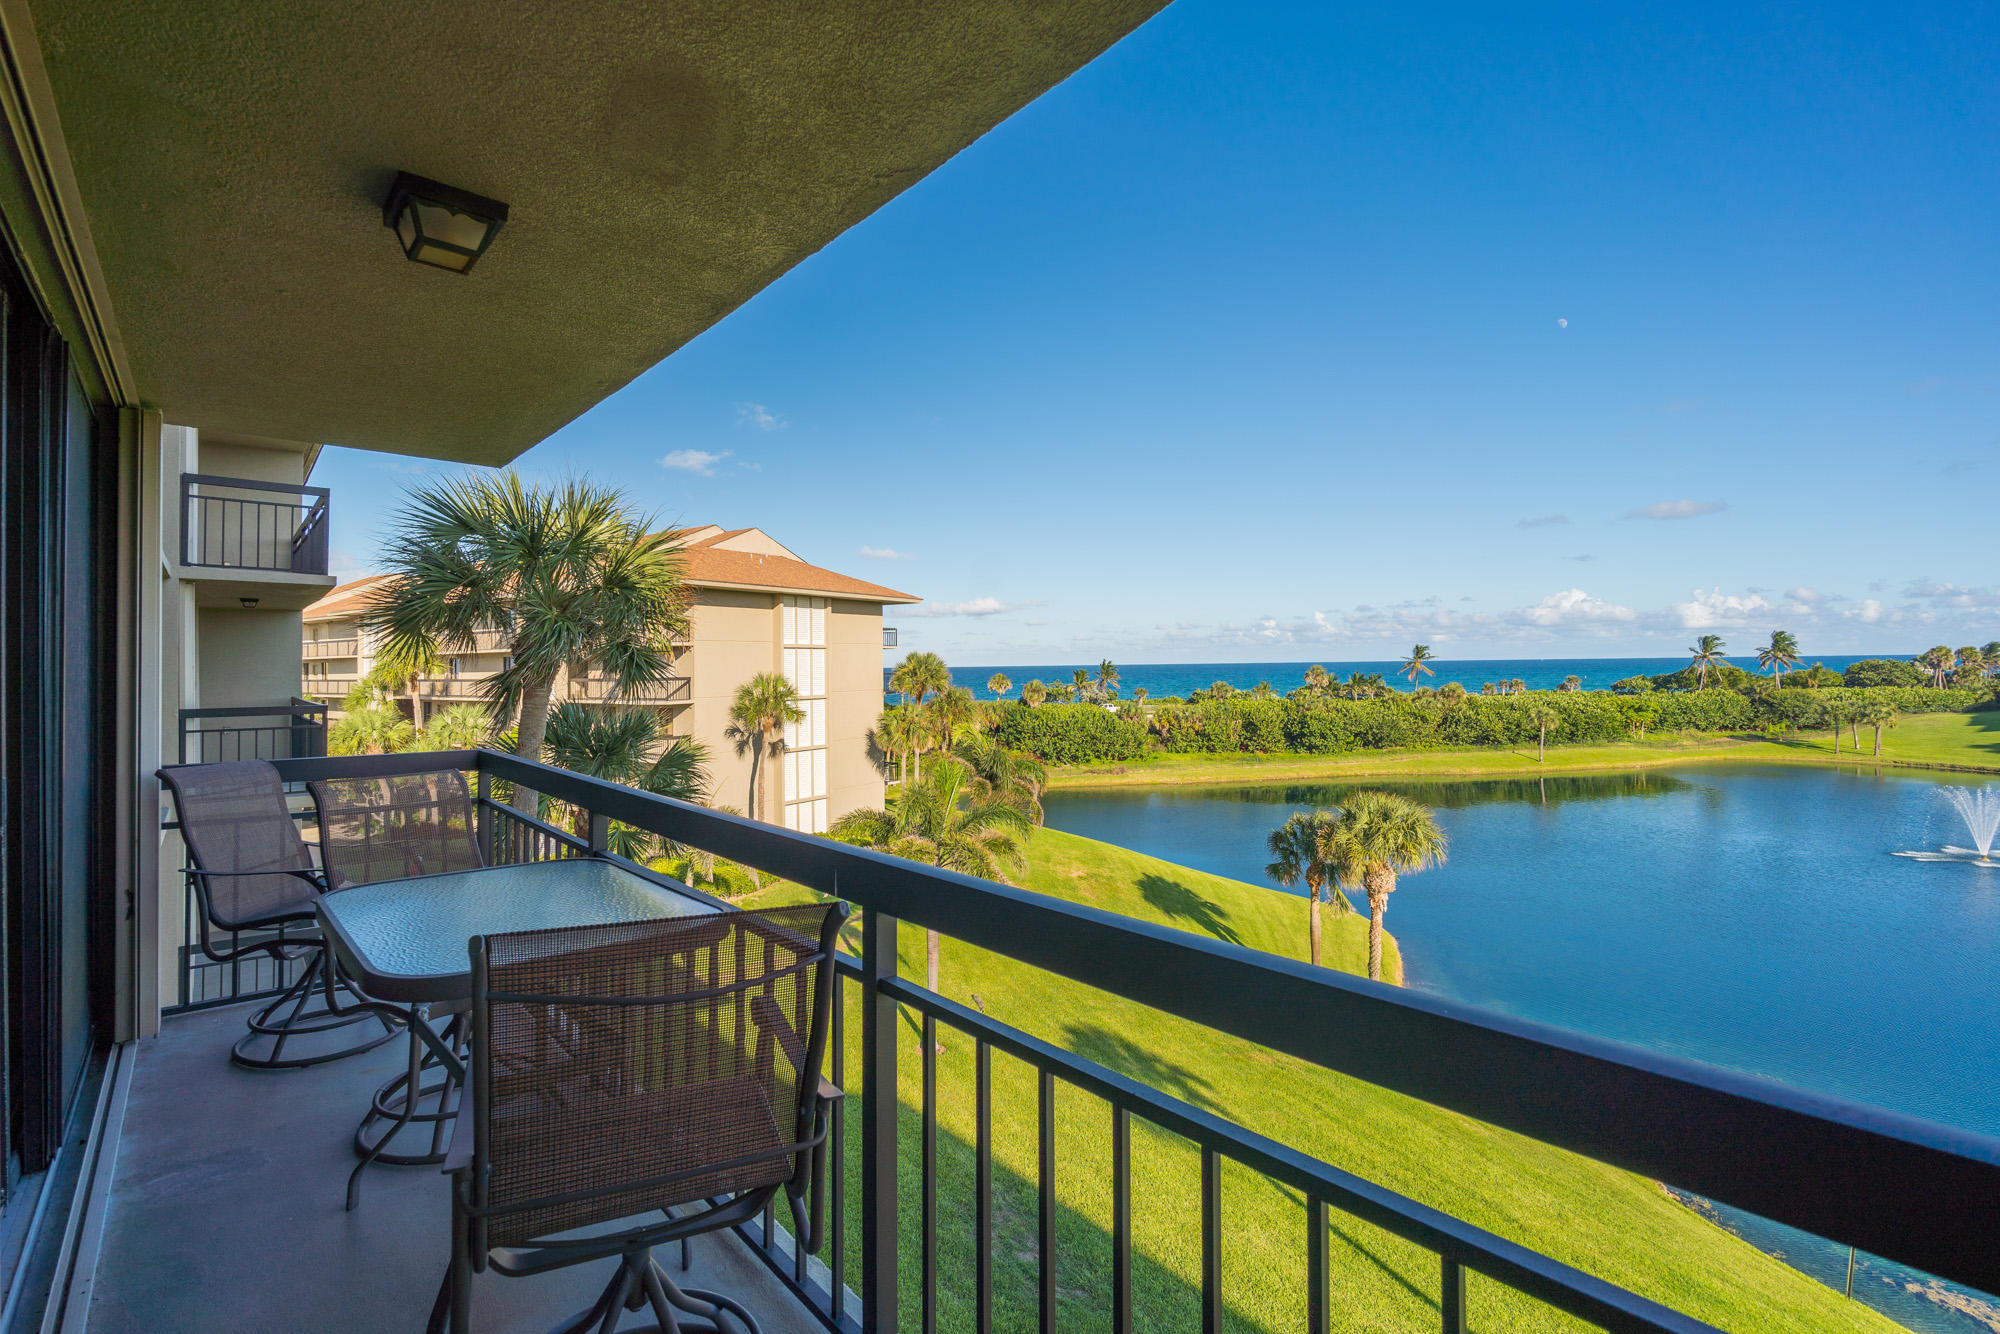 BLUFFS OCEAN SOUTH REALTY